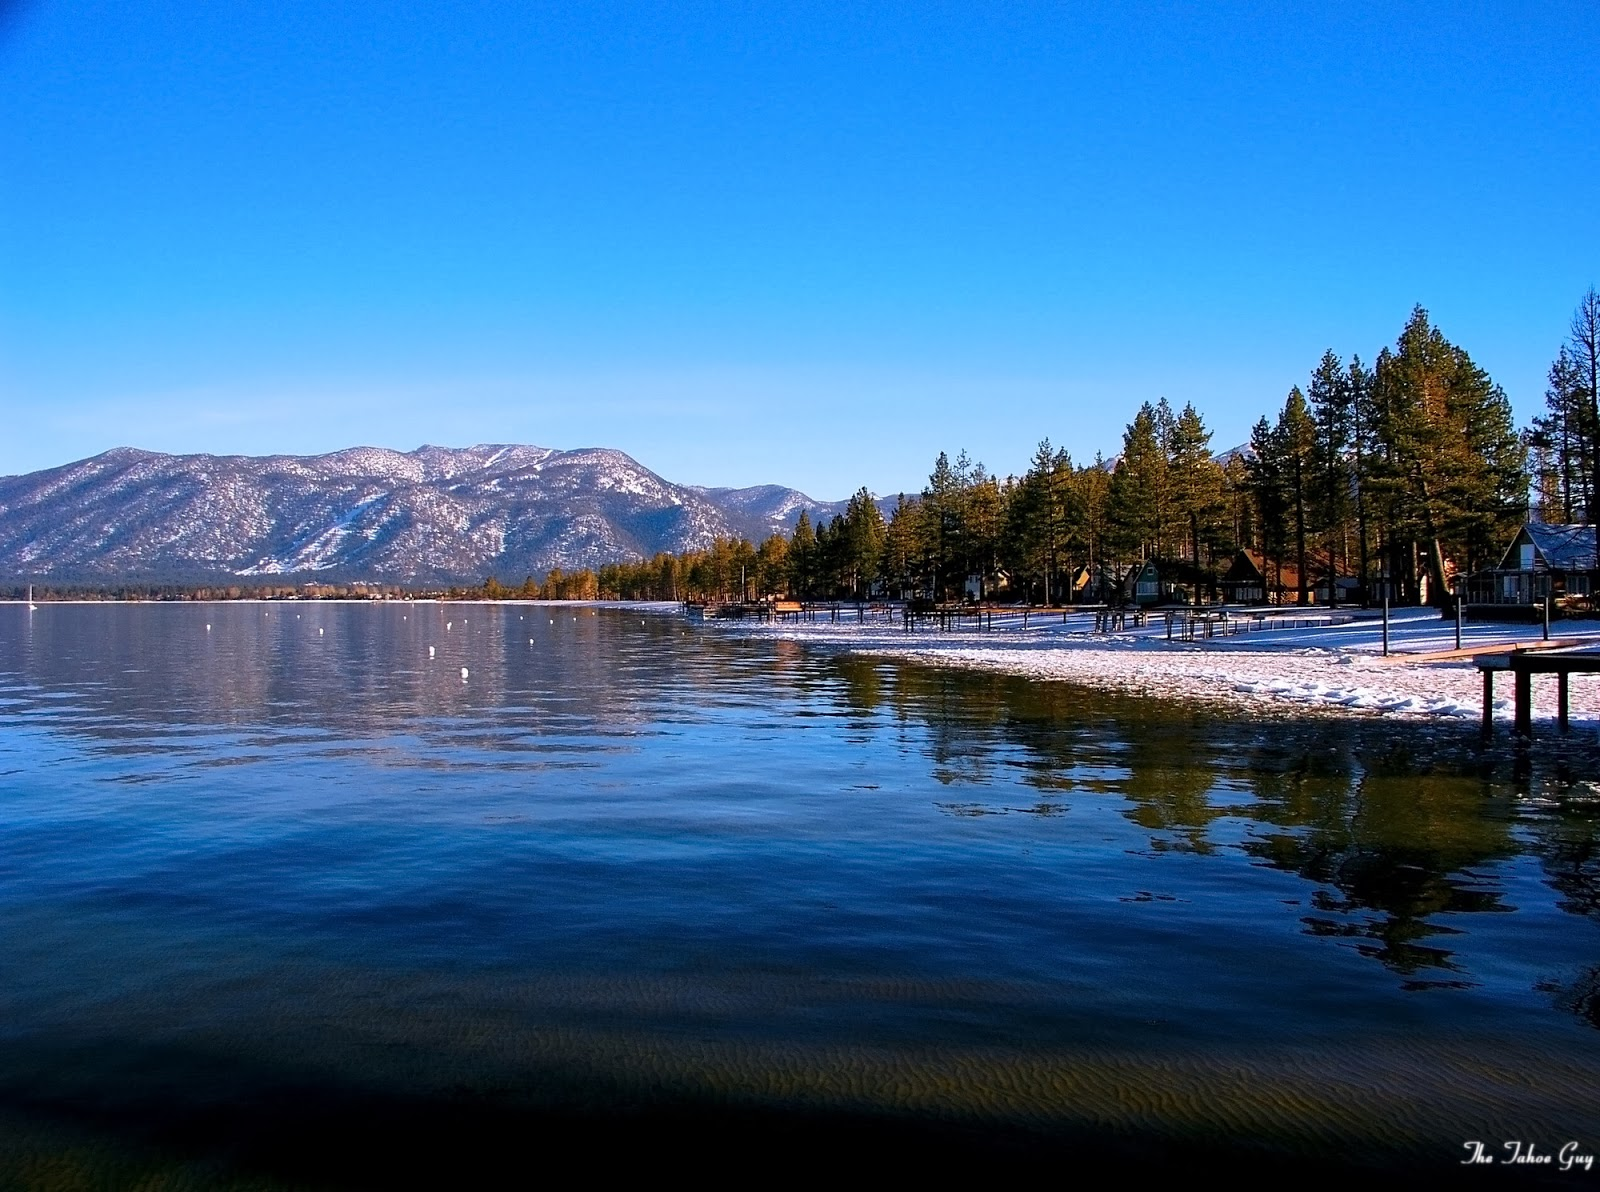 Alexanderarchipel 6567 together with Pacific Beach San Diego in addition Watch as well Cheap Flights To Lake Tahoe d180041 also Nike Swim C  Lake Tahoe. on southlake tahoe